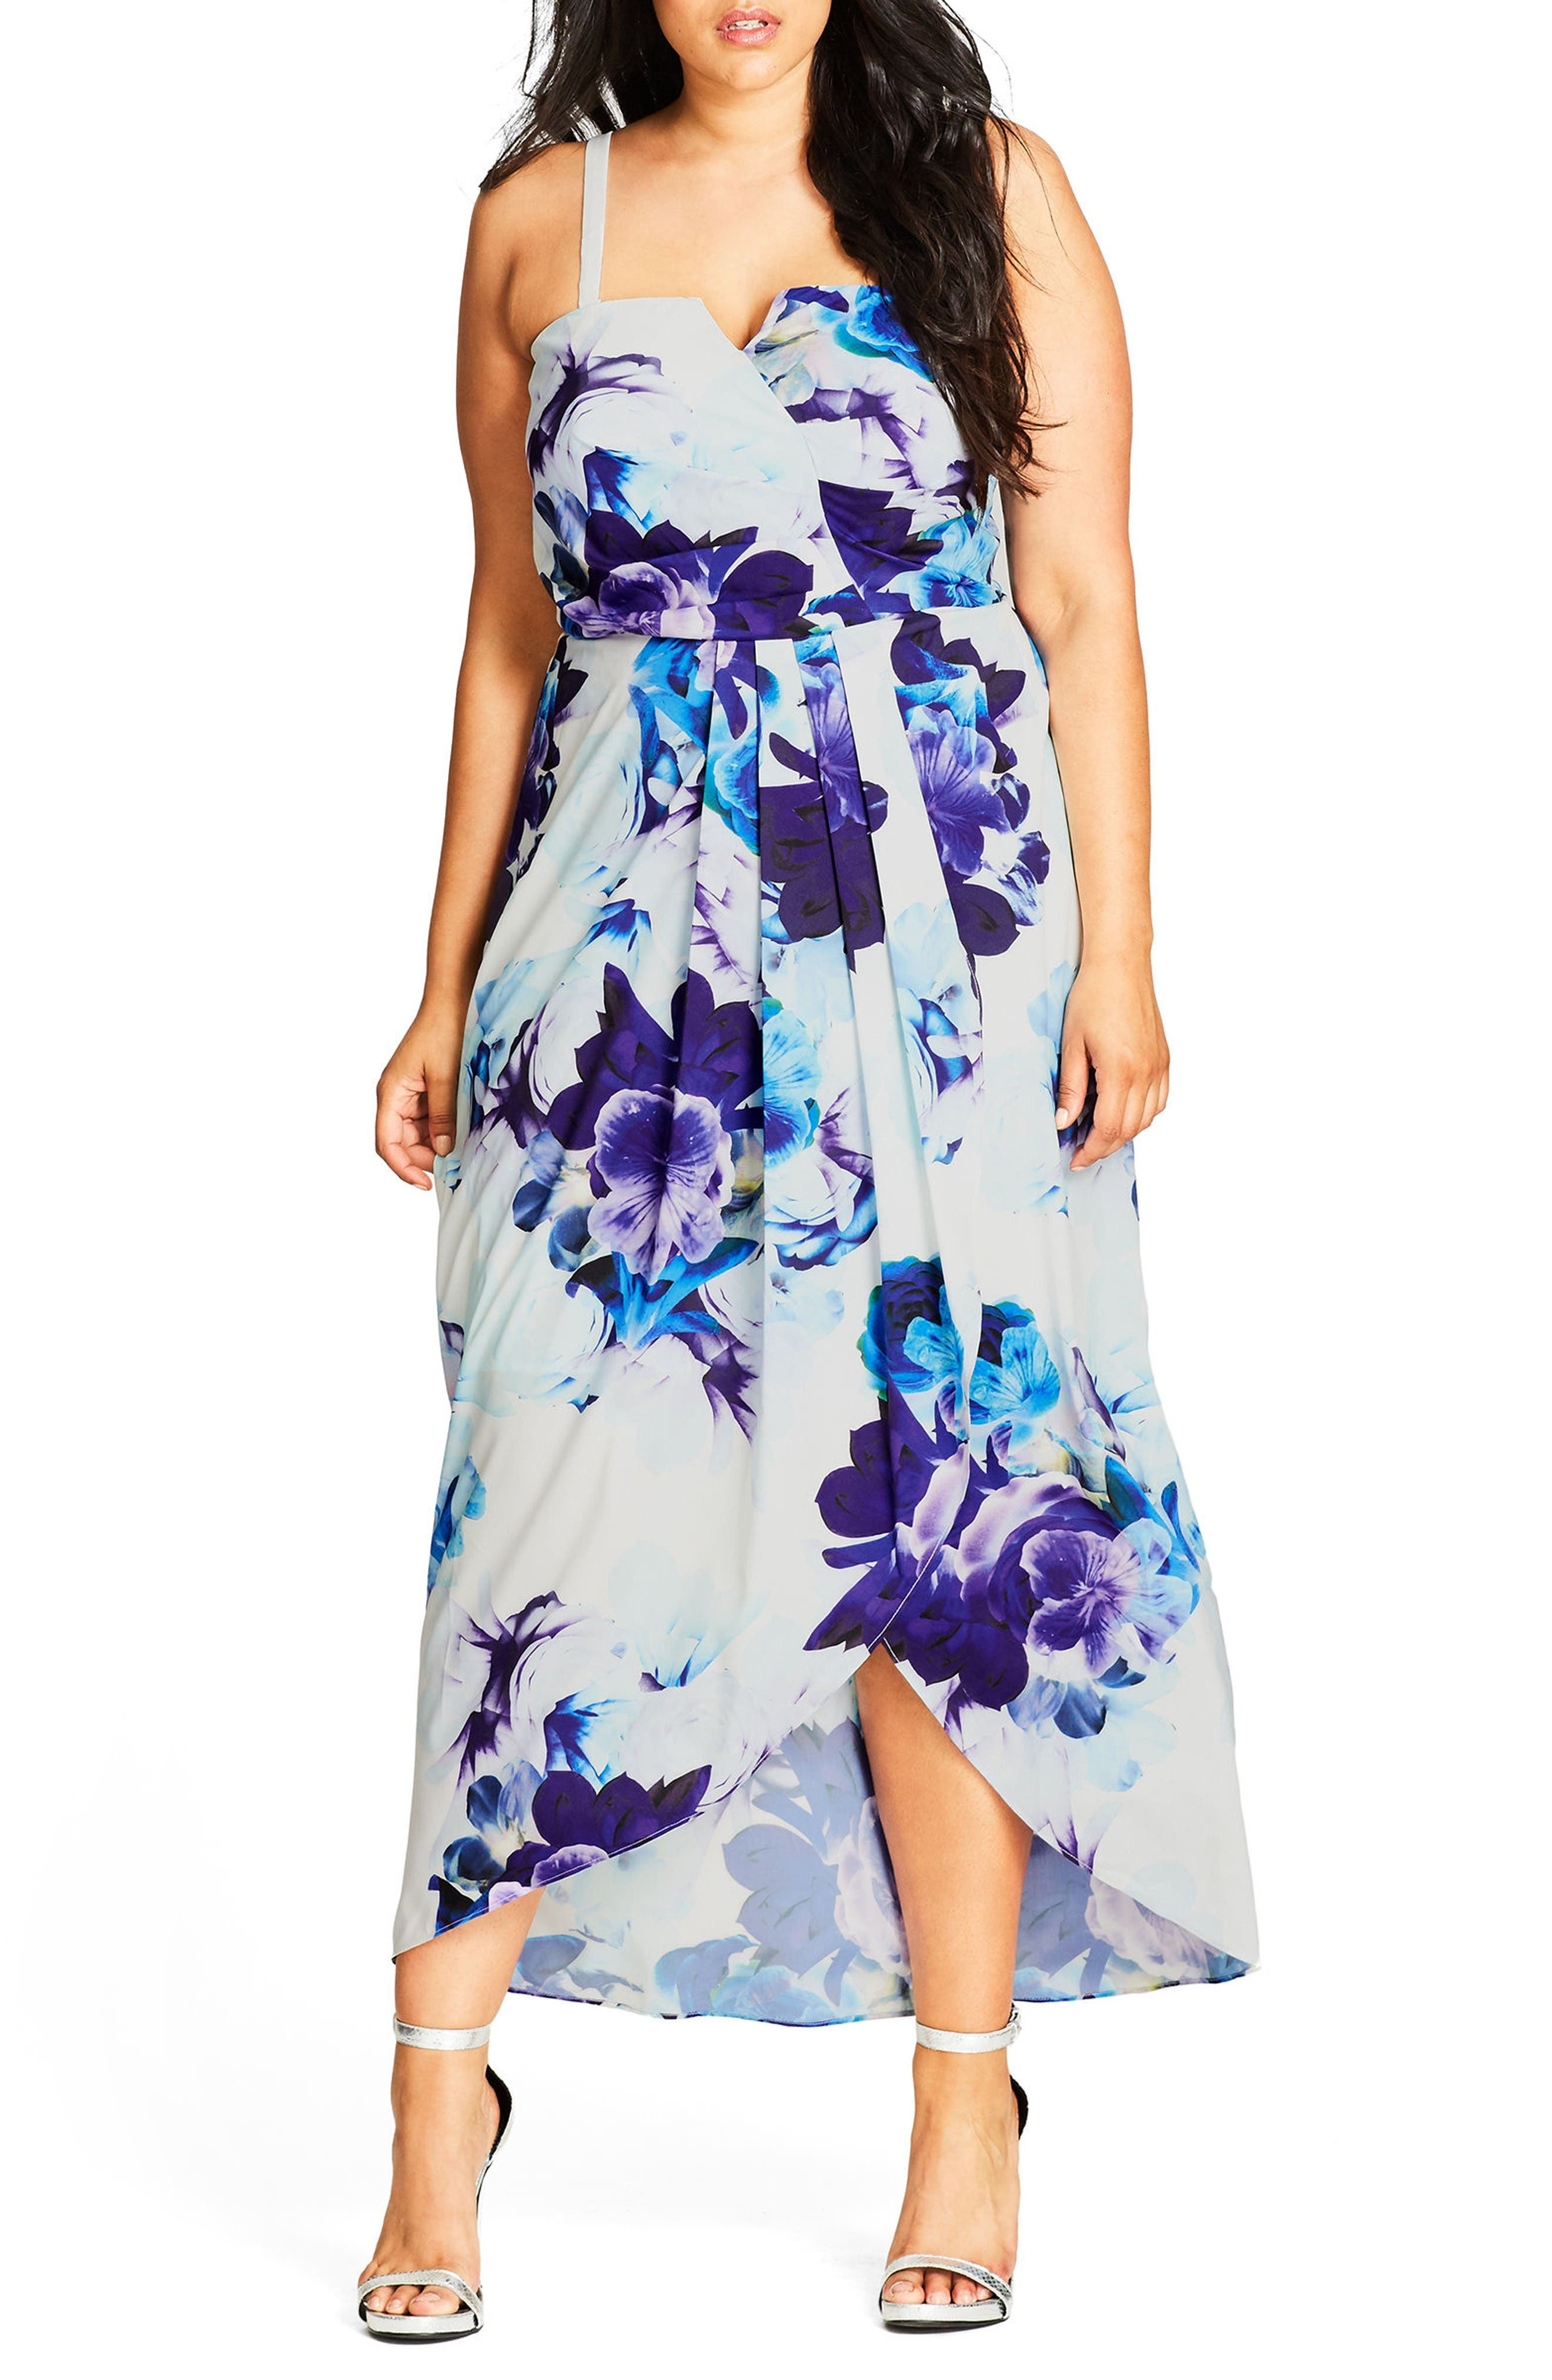 Alternate Image 1 Selected - City Chic Blue Bloom High/Low Maxi Dress (Plus Size)